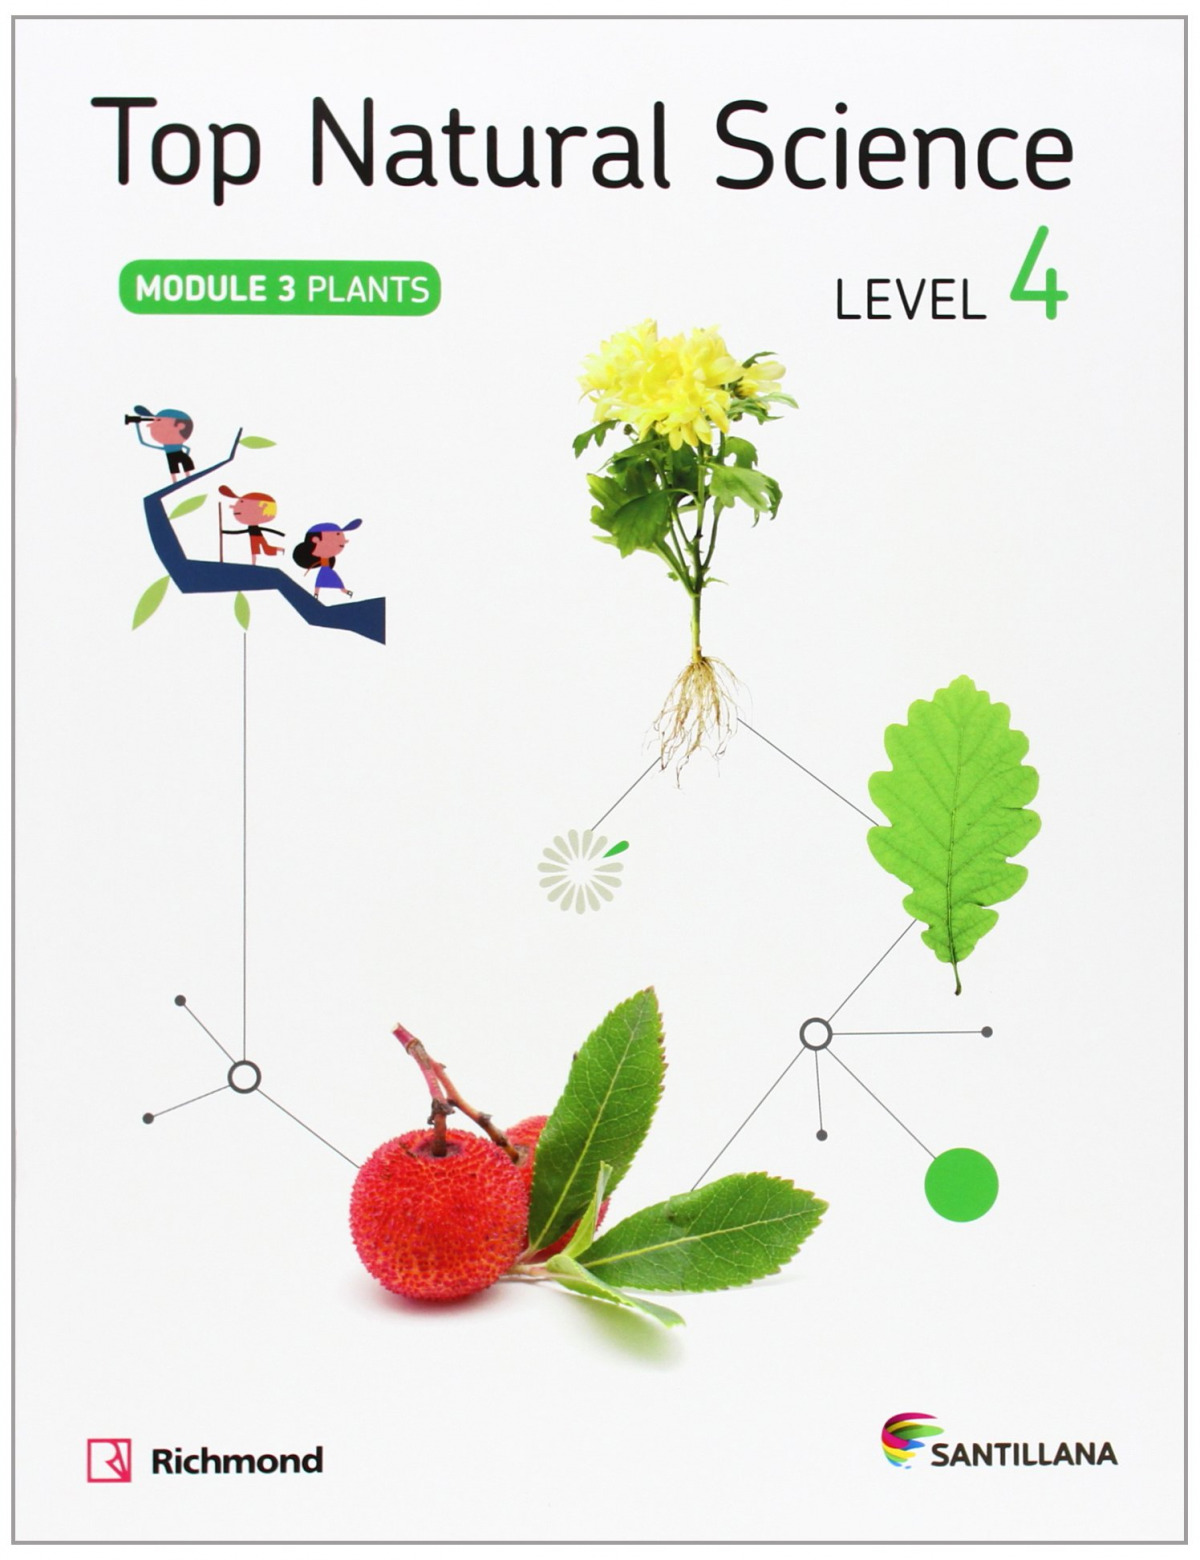 Top natural science 4. Plants